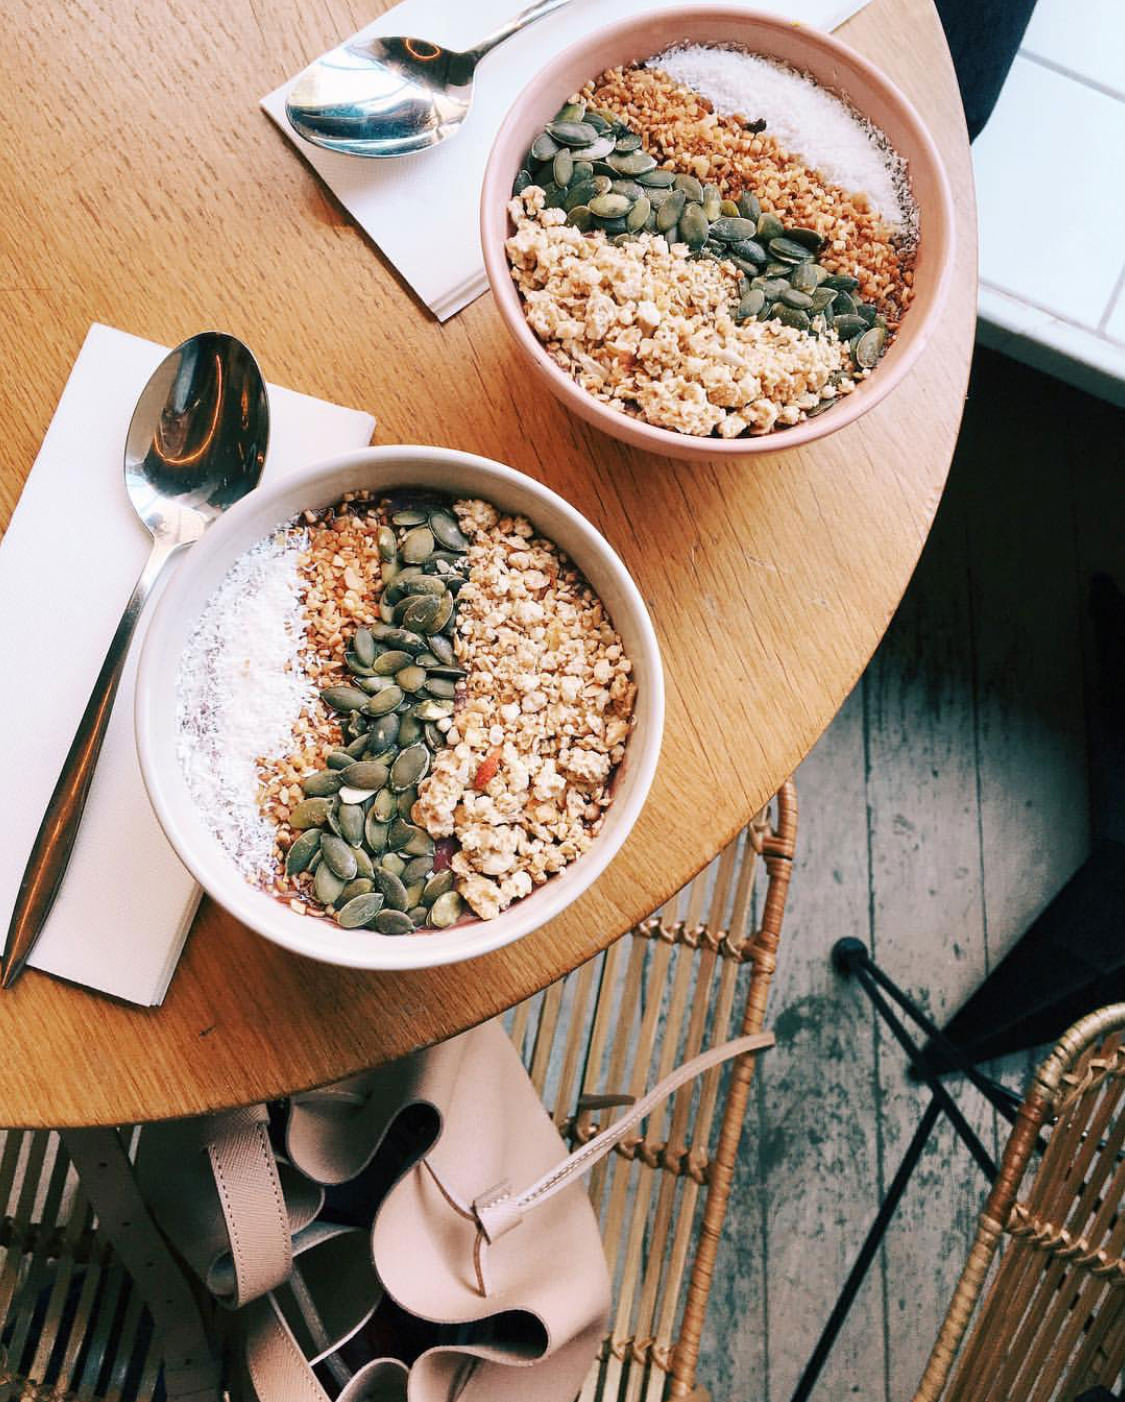 Blog-Mode-And-The-City-Lifestyle-Cinq-Petites-174-Acai-Bowl-Season-Paris